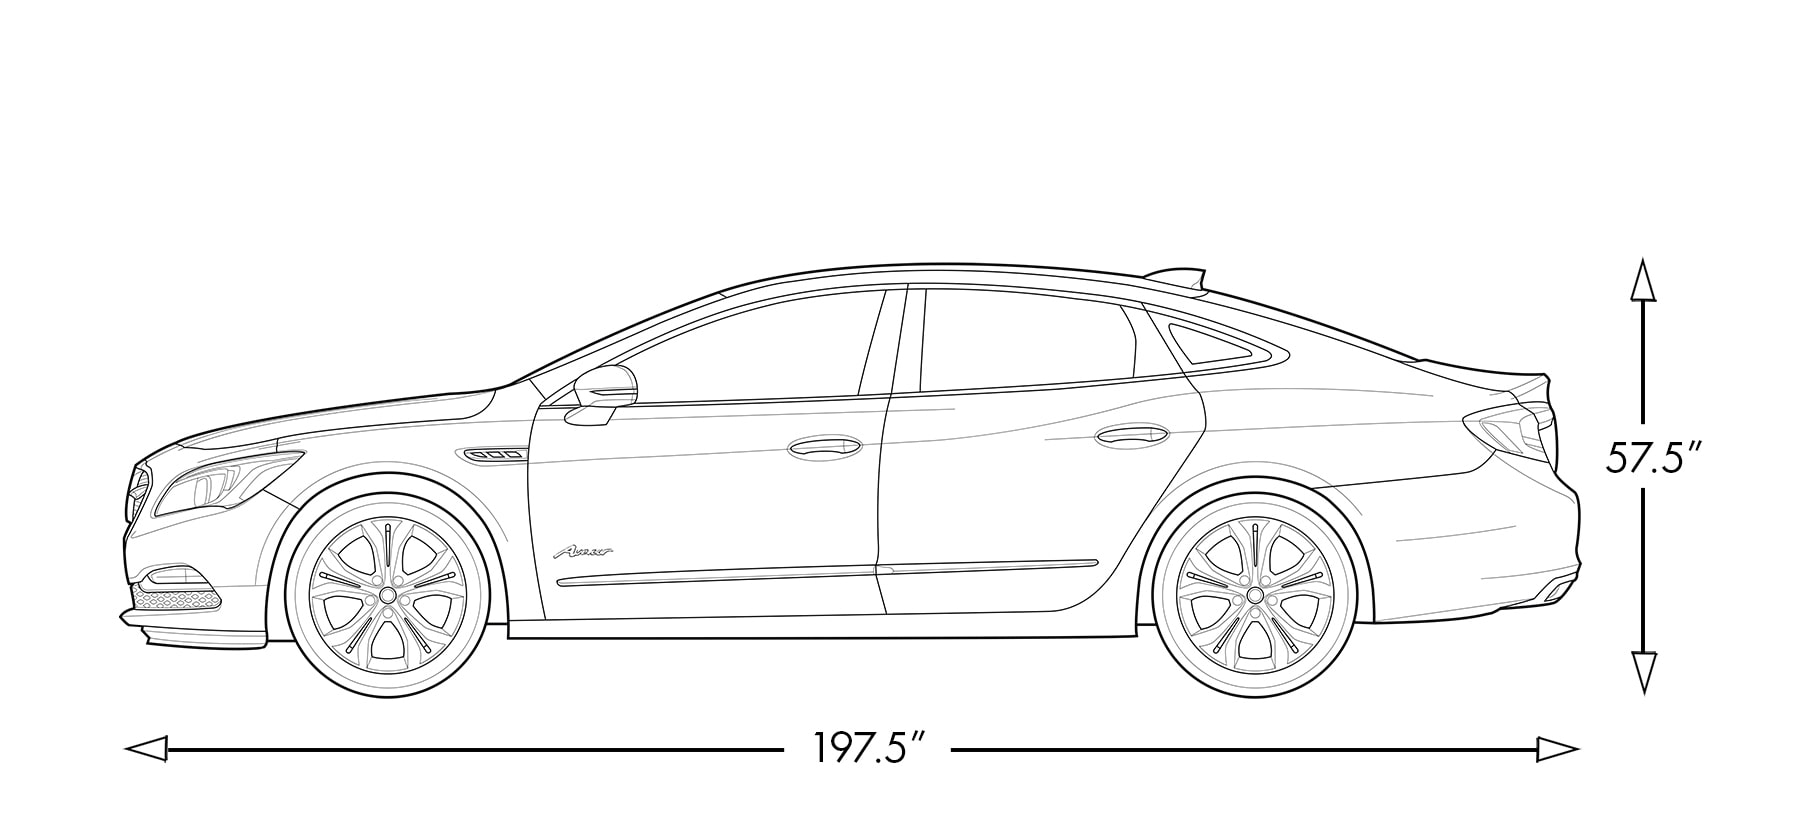 hight resolution of diagram image showing height and length of the 2019 buick lacrosse avenir full size luxury